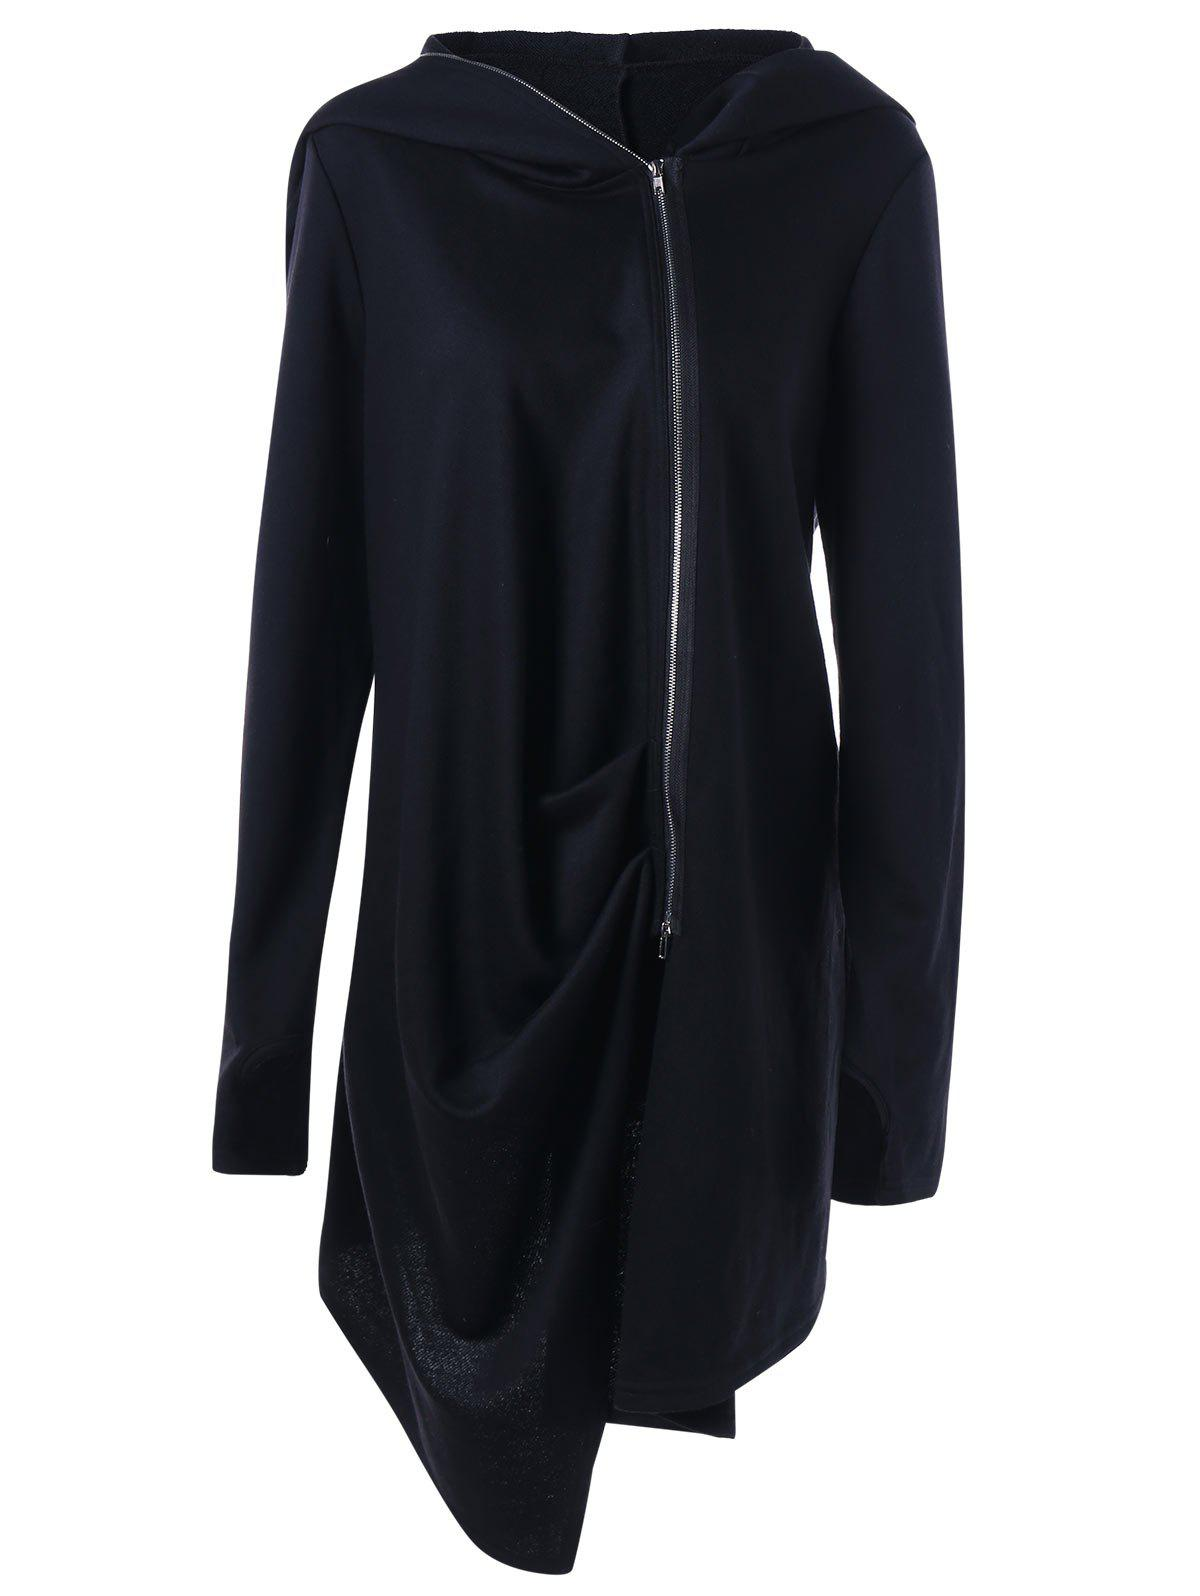 Plus Size Zip Up Hooded Asymmetrical CoatWOMEN<br><br>Size: 5XL; Color: BLACK; Clothes Type: Others; Material: Polyester; Type: Asymmetric Length; Shirt Length: Long; Sleeve Length: Full; Collar: Hooded; Pattern Type: Solid; Embellishment: Zippers; Style: Casual; Season: Fall,Spring; Weight: 0.8500kg; Package Contents: 1 x Coat;